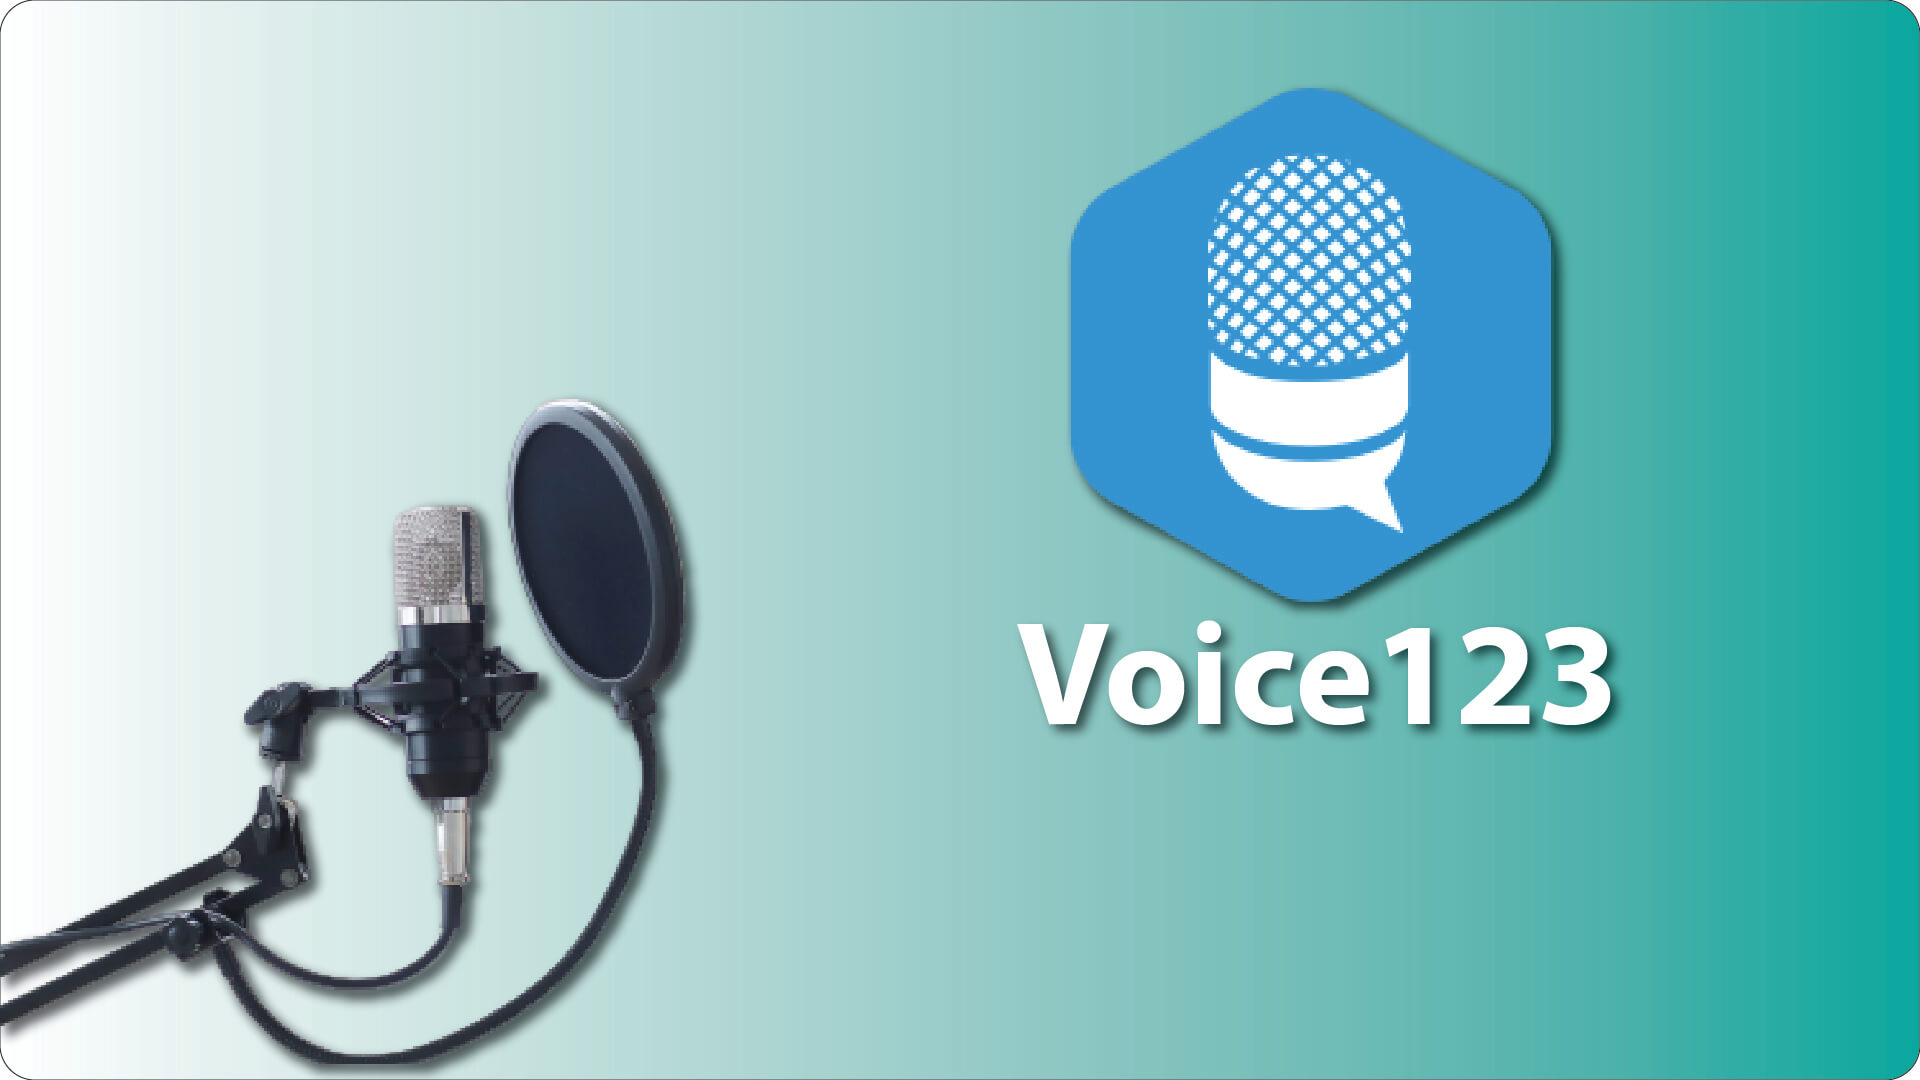 Mic With Voice123 logo